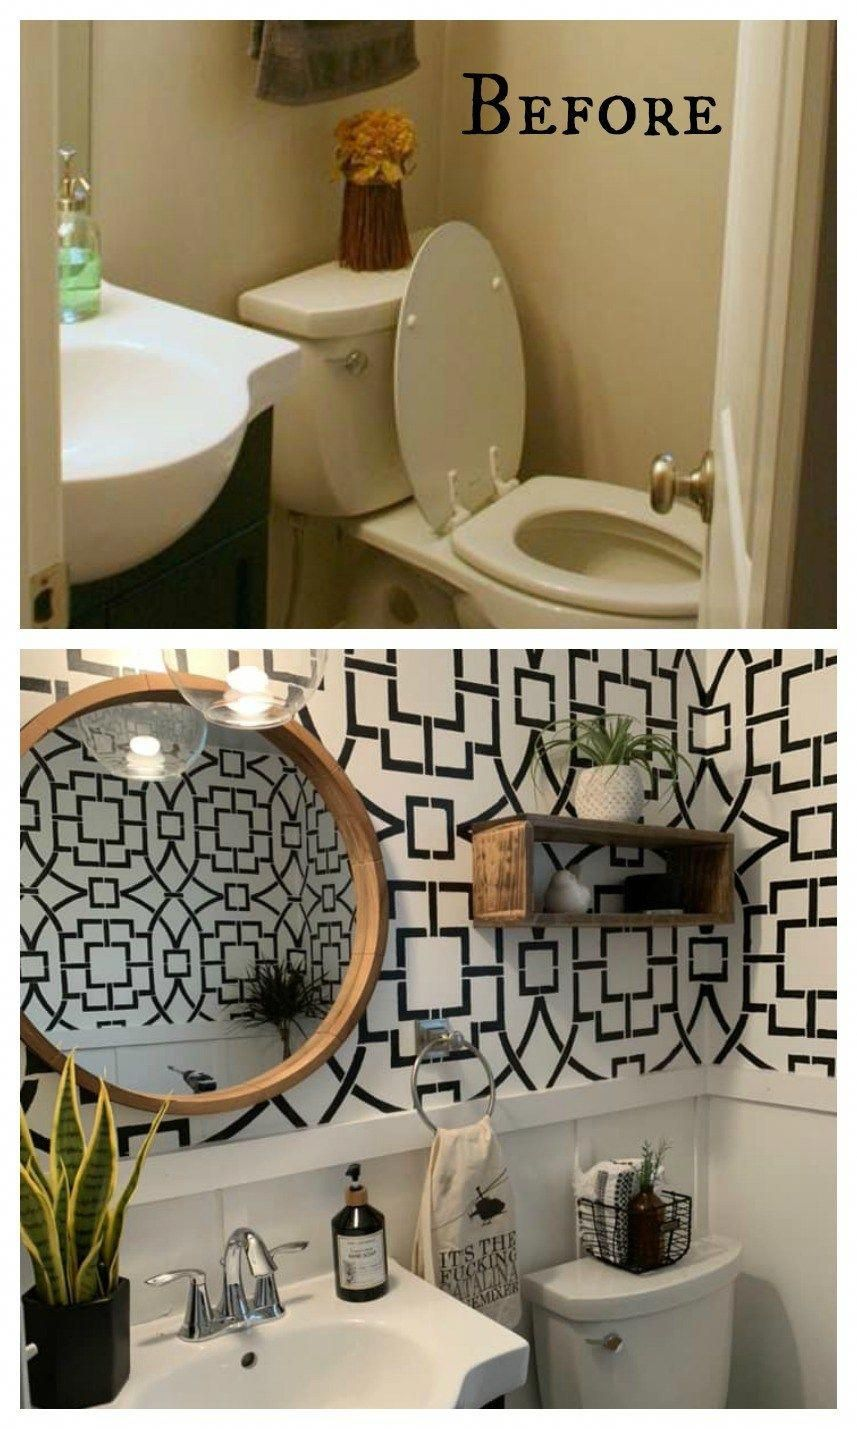 40 Wallpaper Transformations That Will Blow You Away Lavabos De